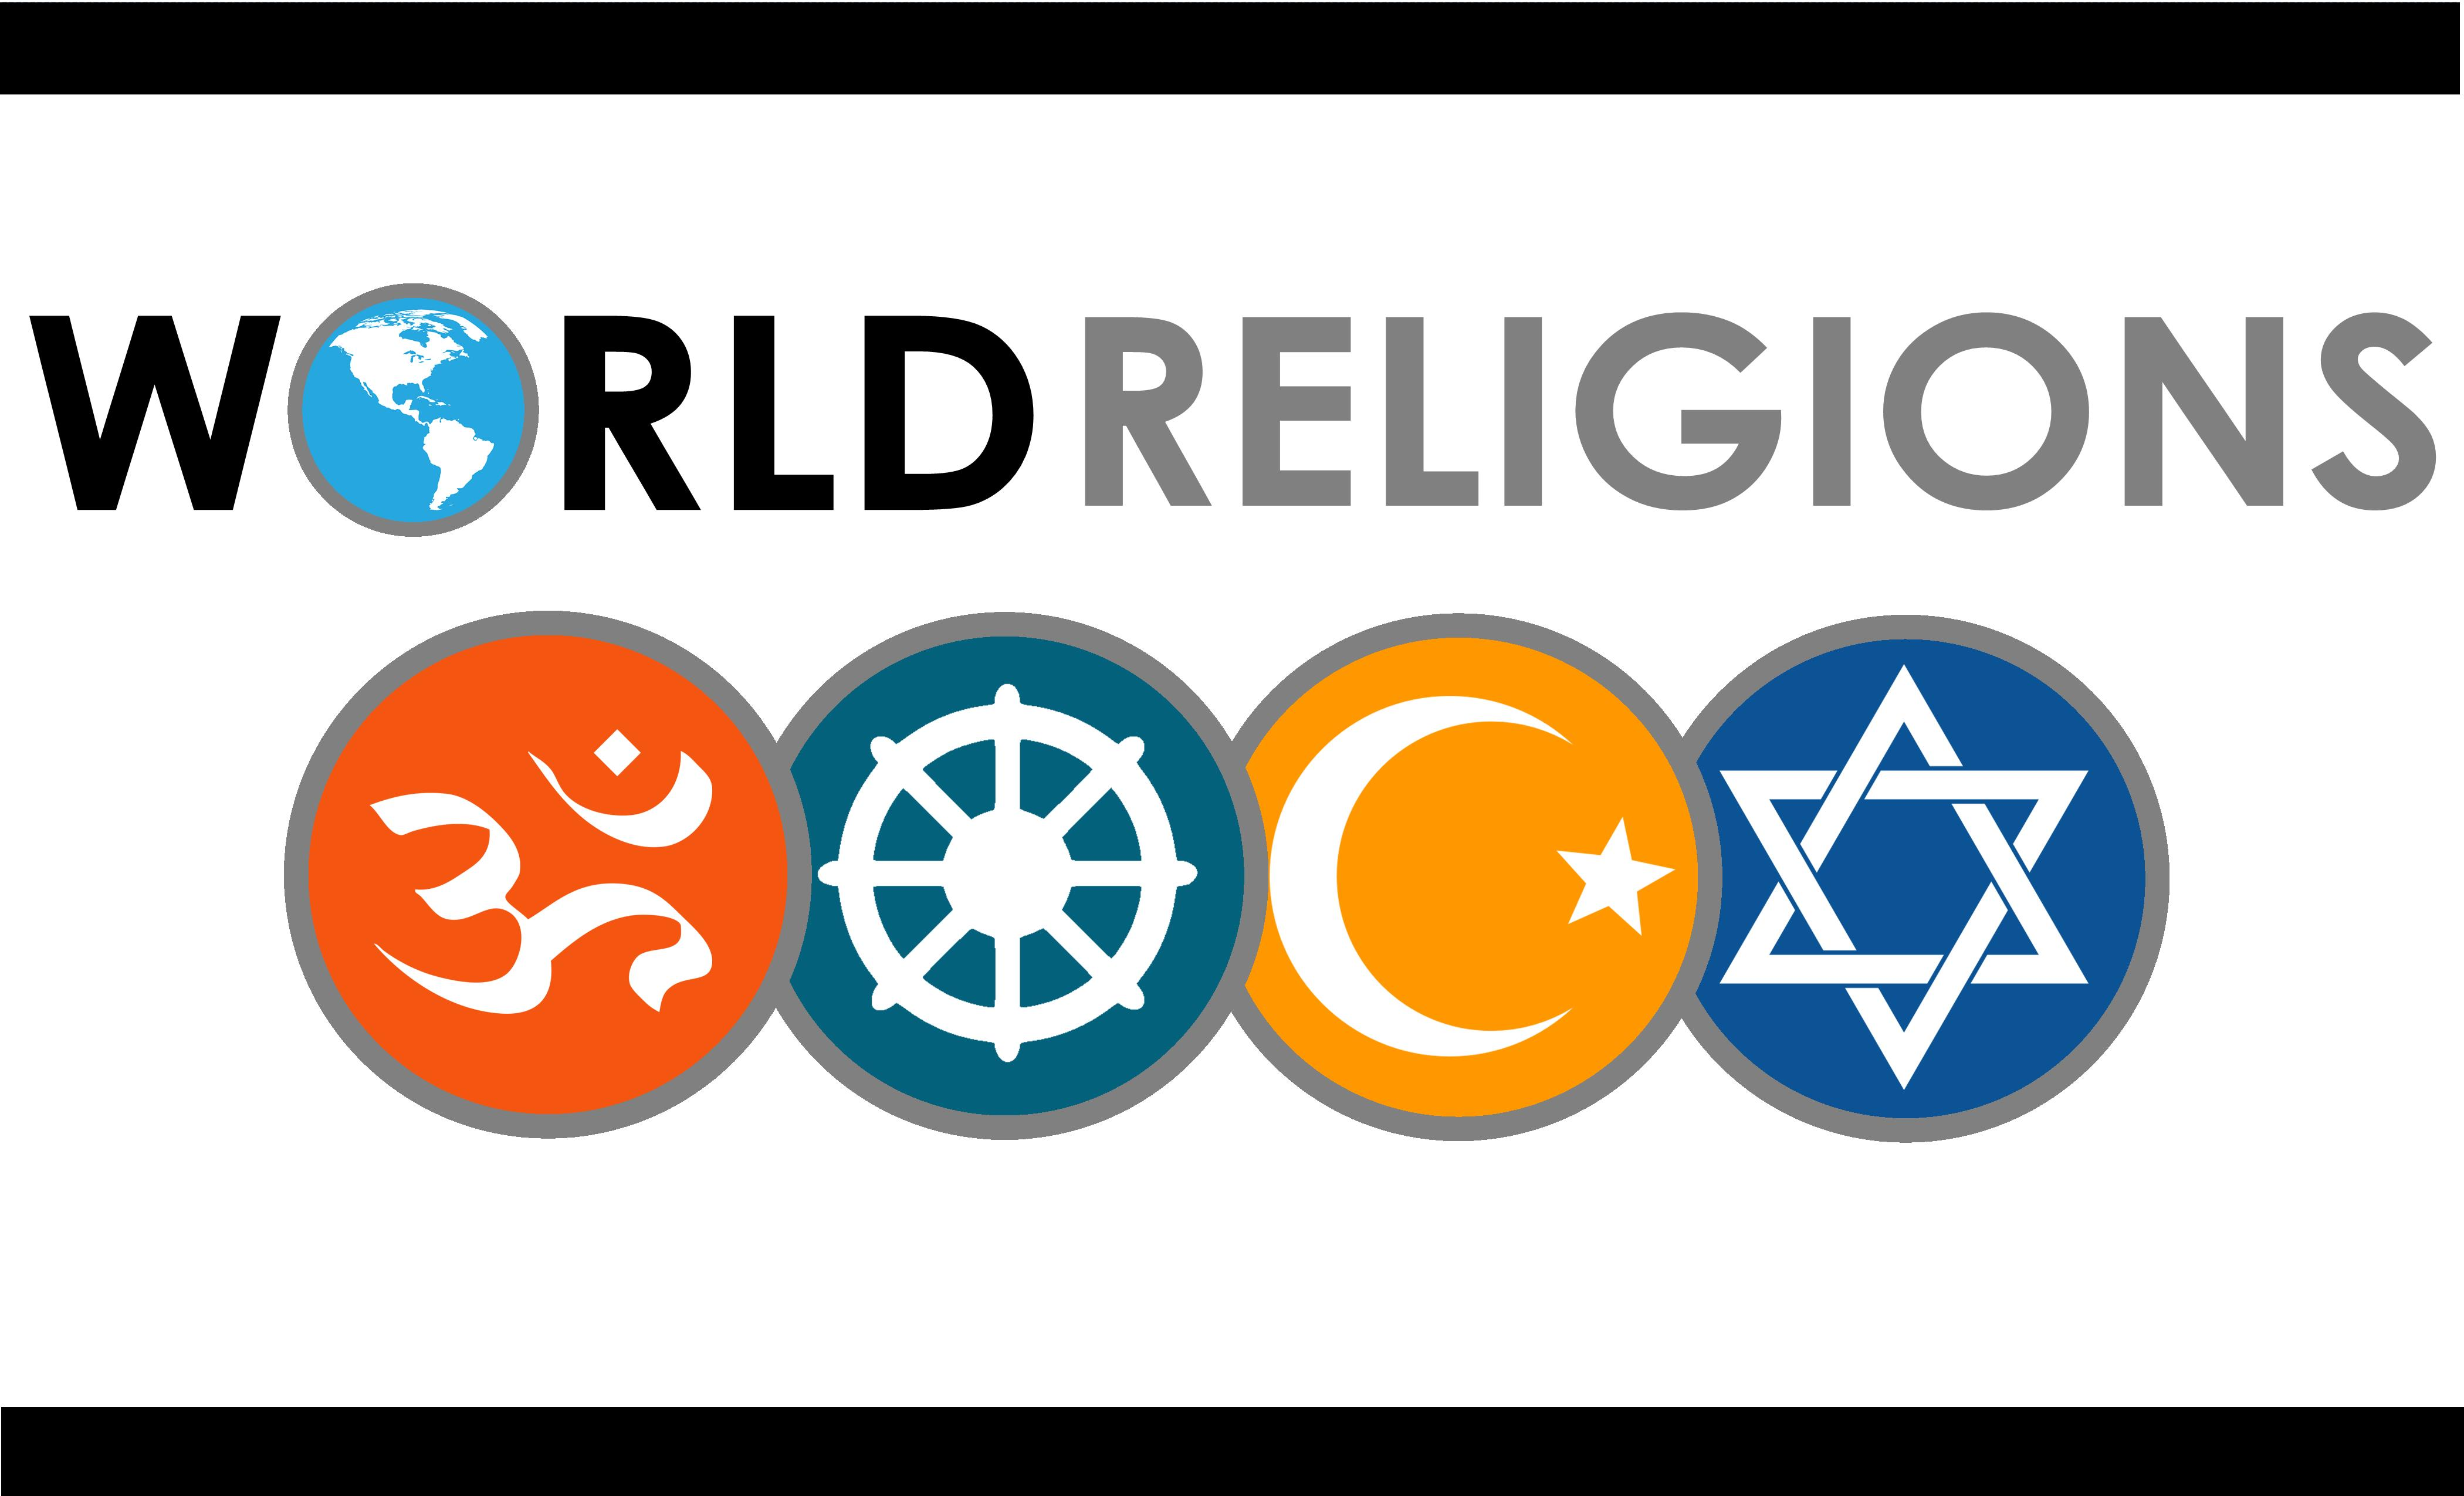 an analysis of the issue of religion in todays world Many of the points an analysis of the issue of religion in todays world i would agree with but not about anything important.